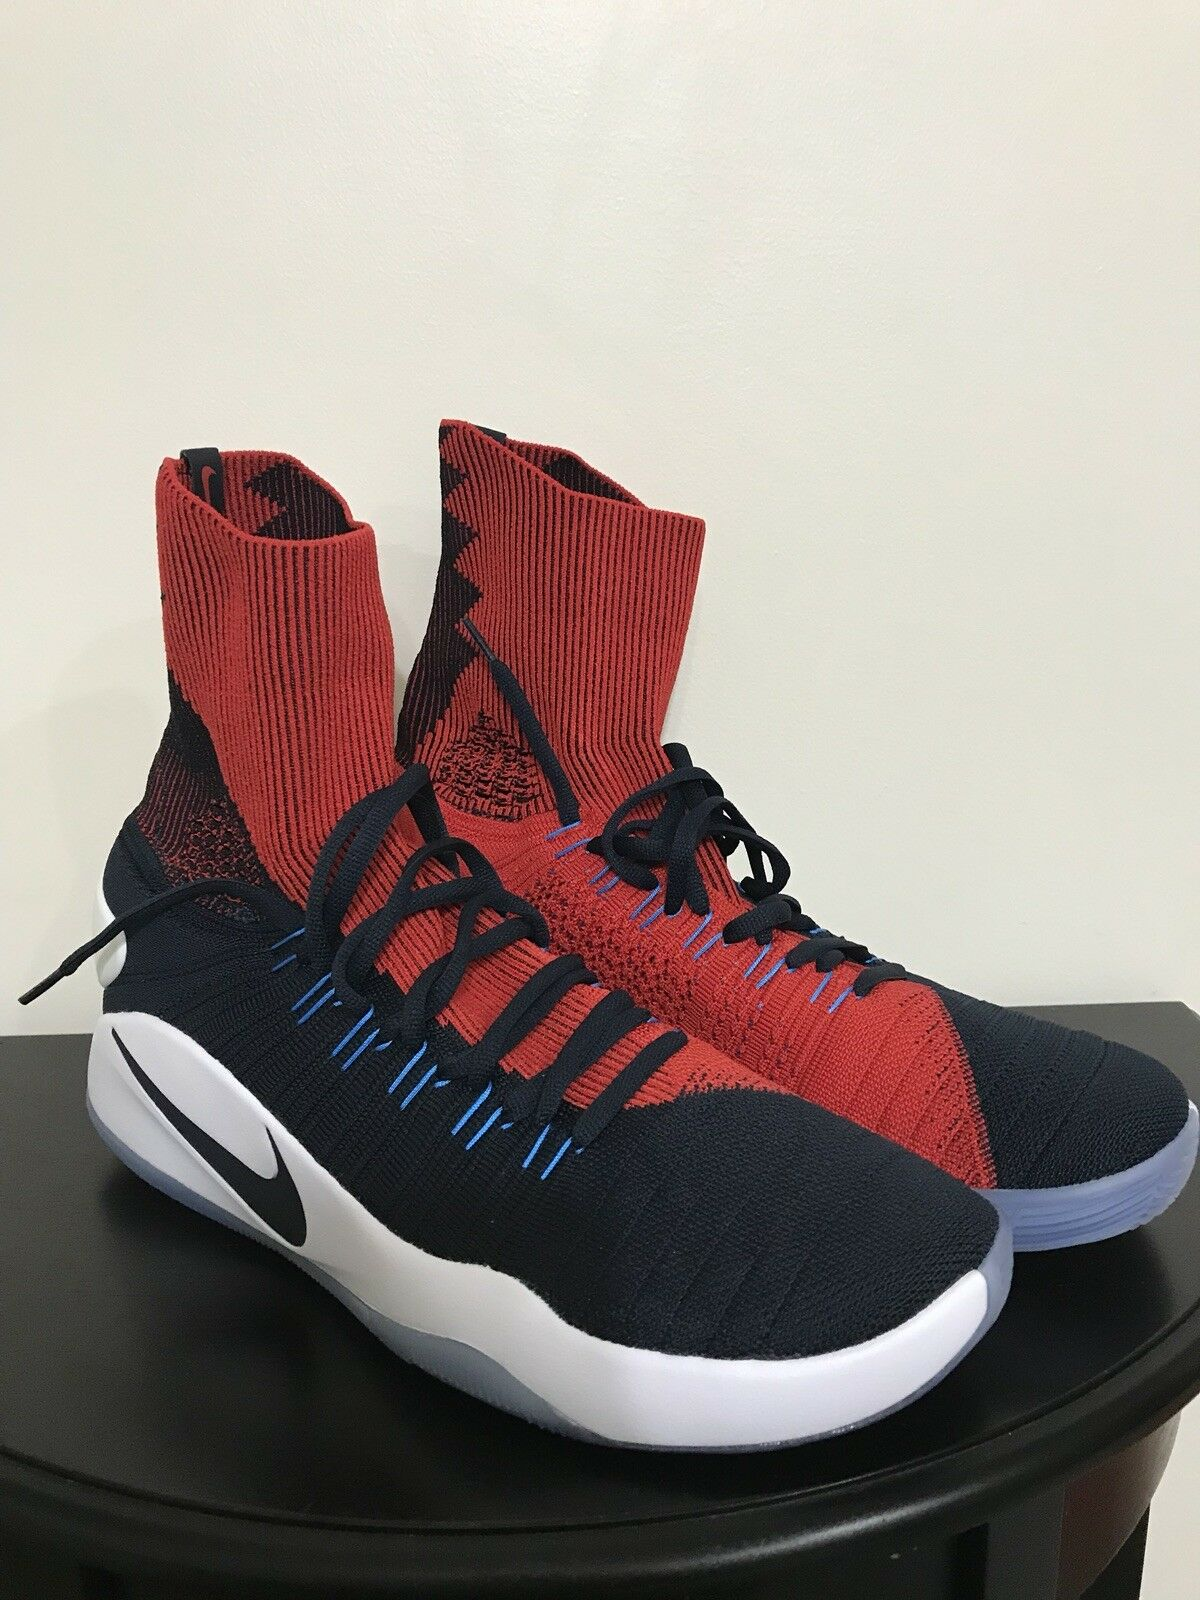 NEW Nike Hyperdunk USA Away 843390-446 Obsidian Navy Crimson Red White Sz 13